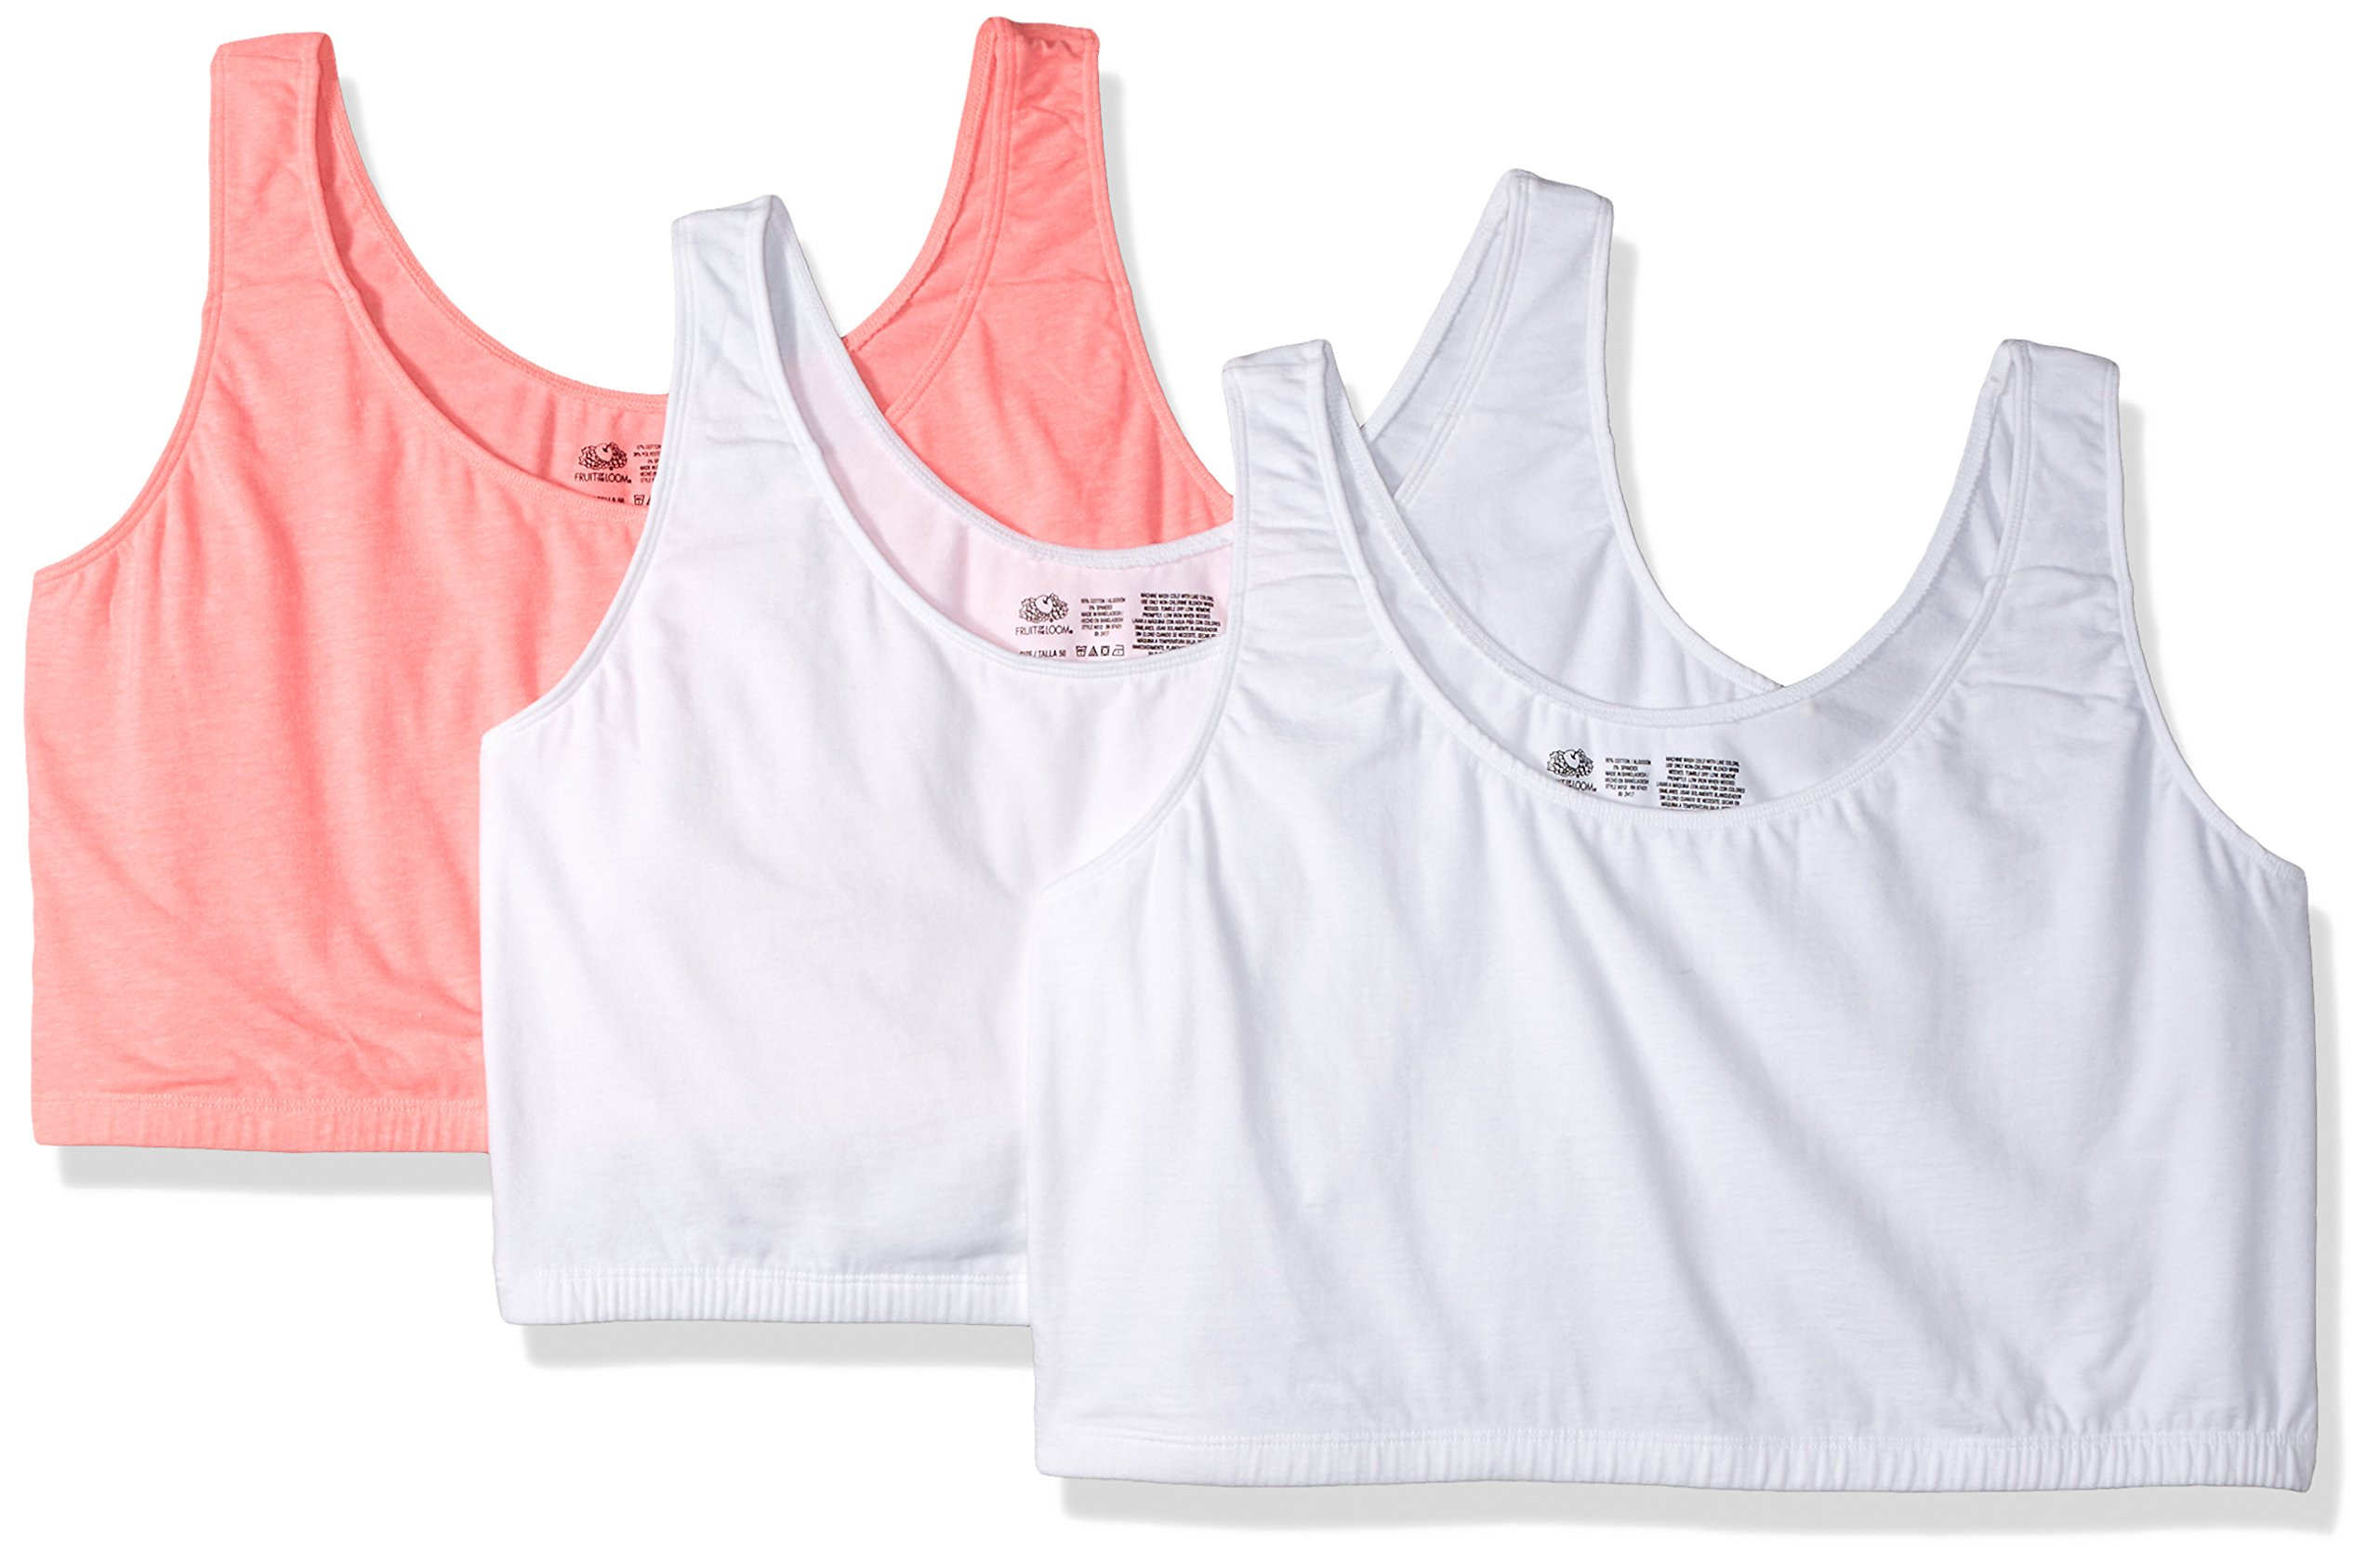 Fruit of the Loom Women's Built-Up Sports Bra, White/Popsicle Pink-3 Pack, 48 by Fruit of the Loom